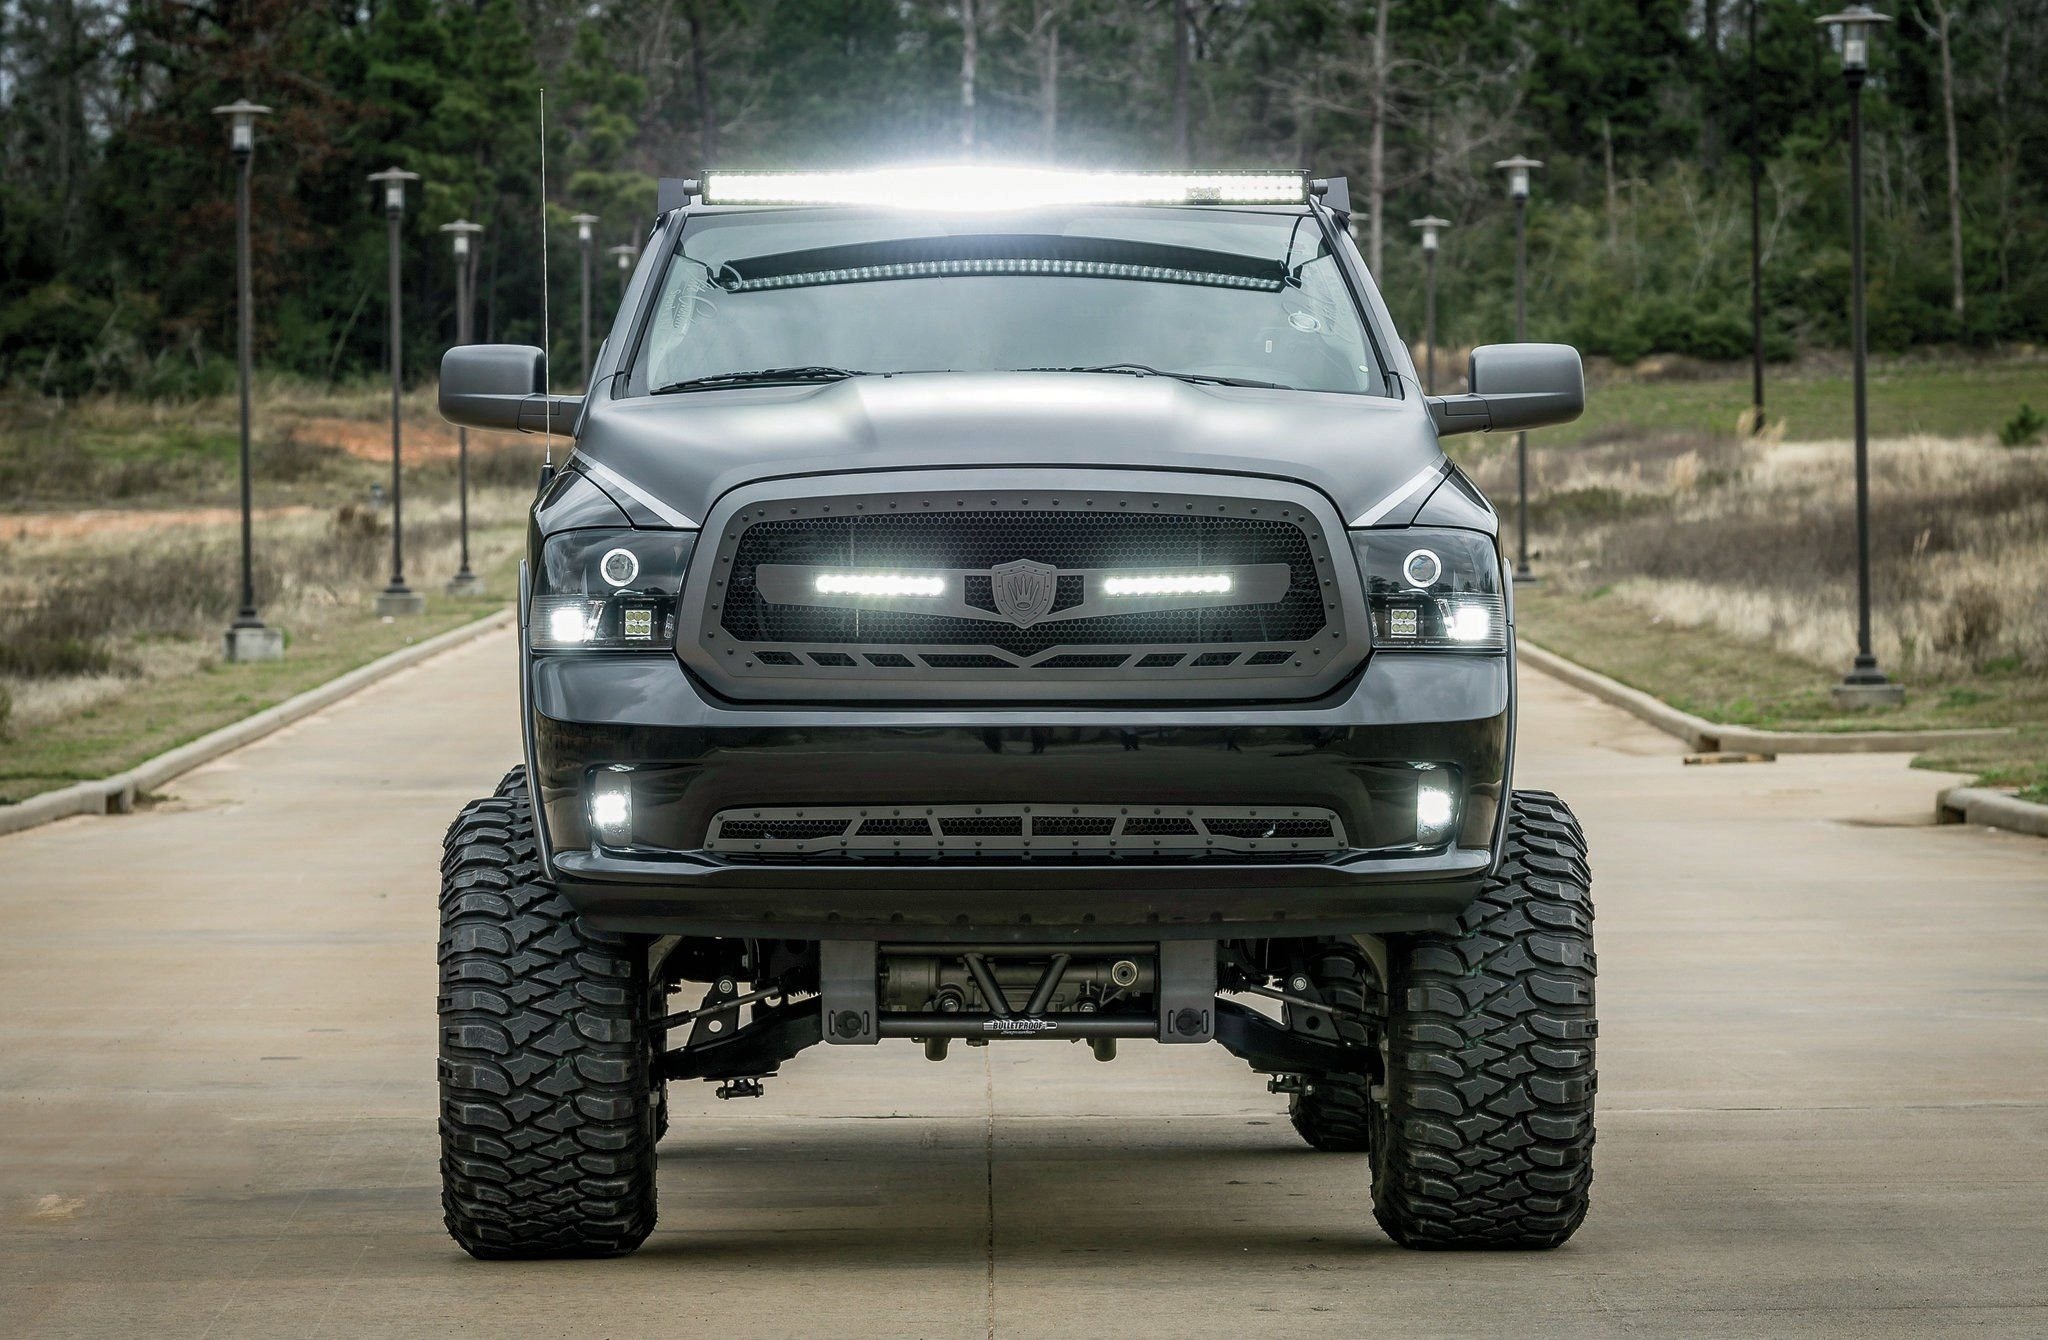 2013 dodge ram 1500 4x4 pickup tuning custom mopar wallpaper 2048x1340 857661 wallpaperup. Black Bedroom Furniture Sets. Home Design Ideas